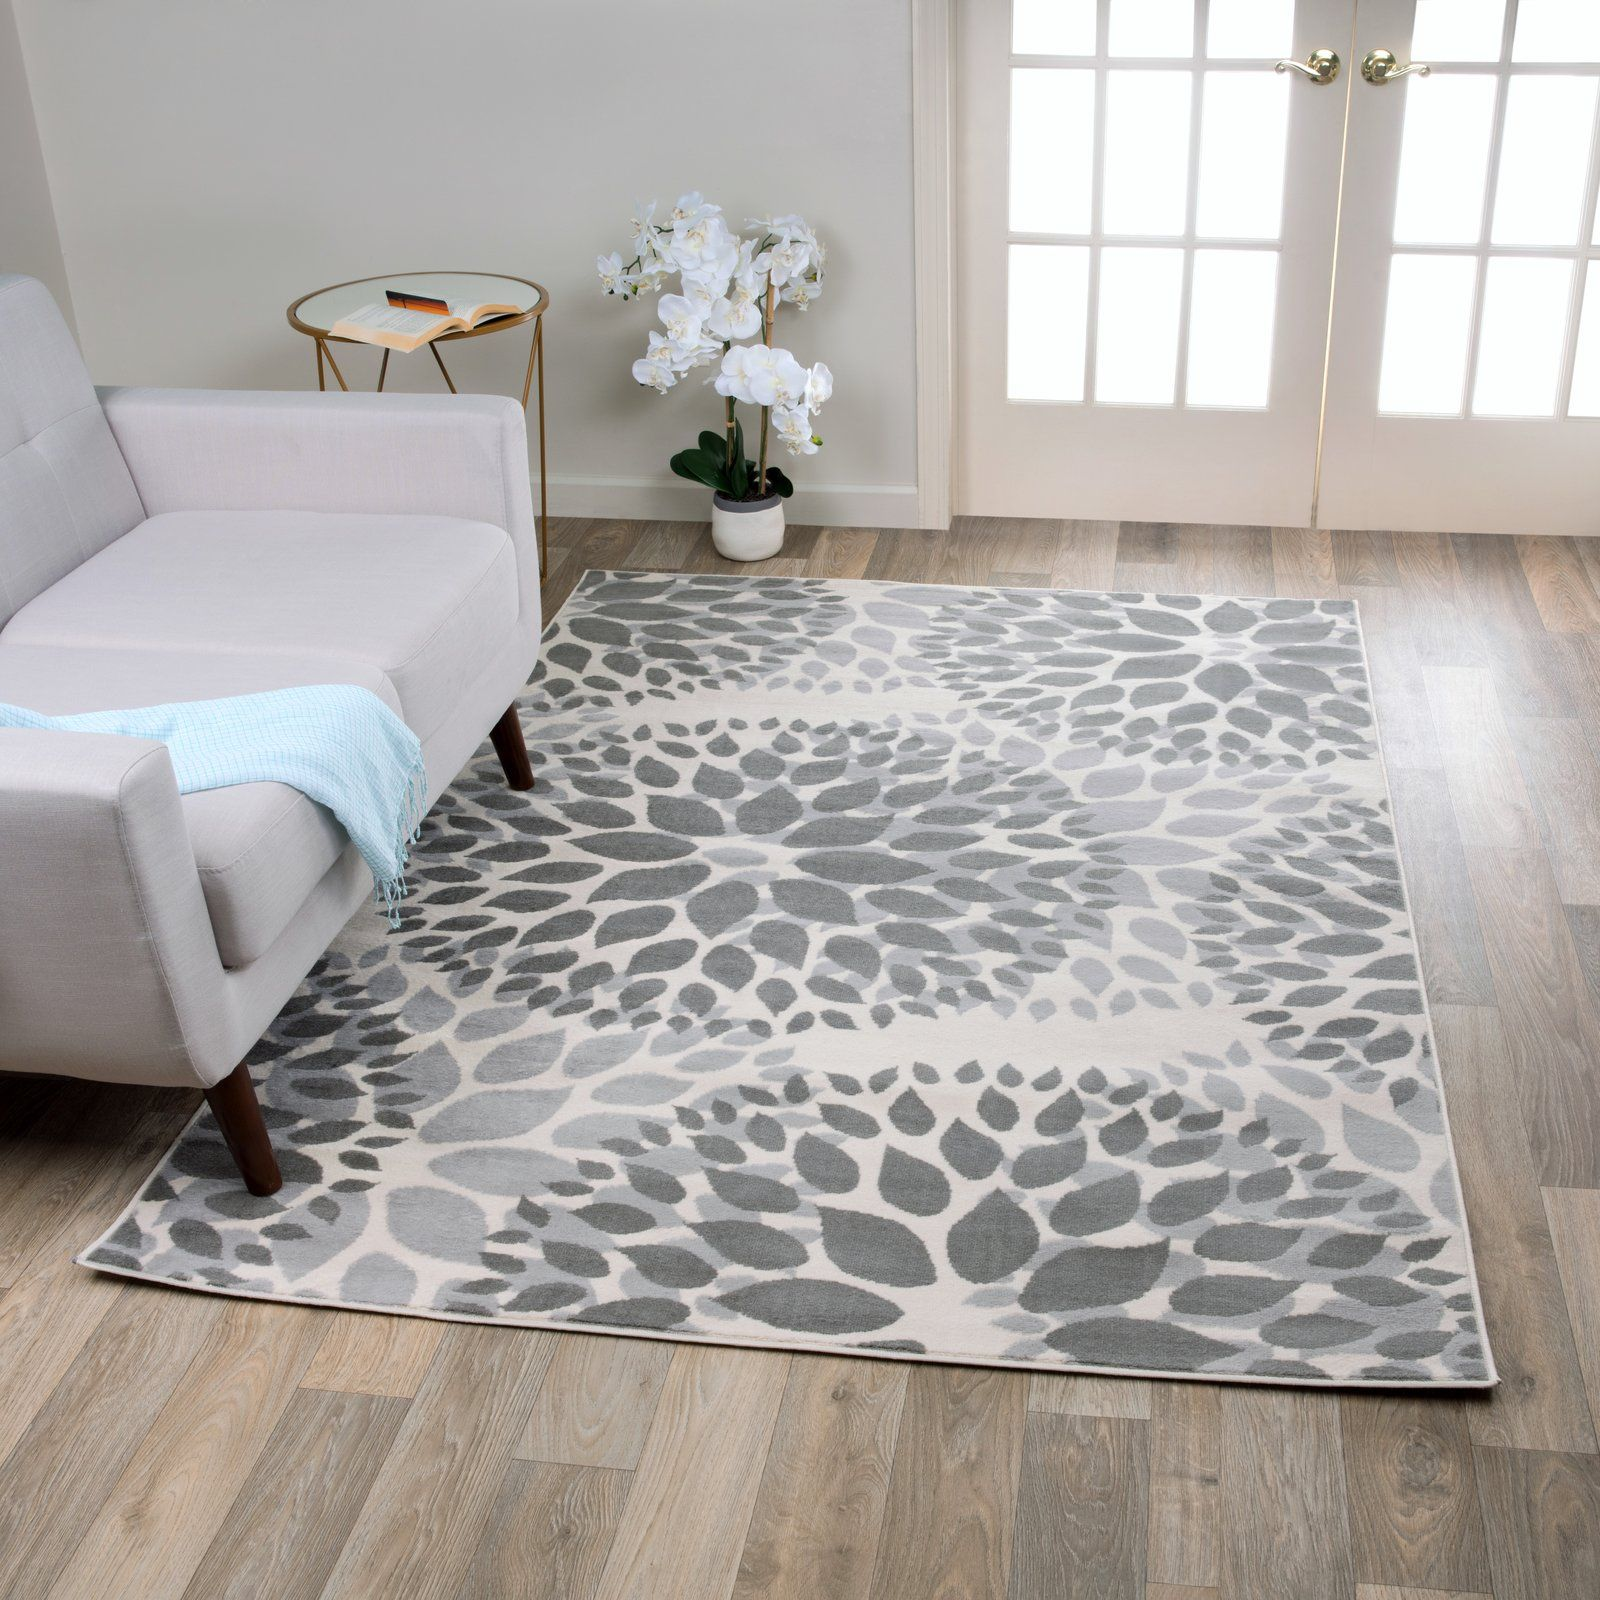 Beaudette floral gray area rug area rugs grey area rug